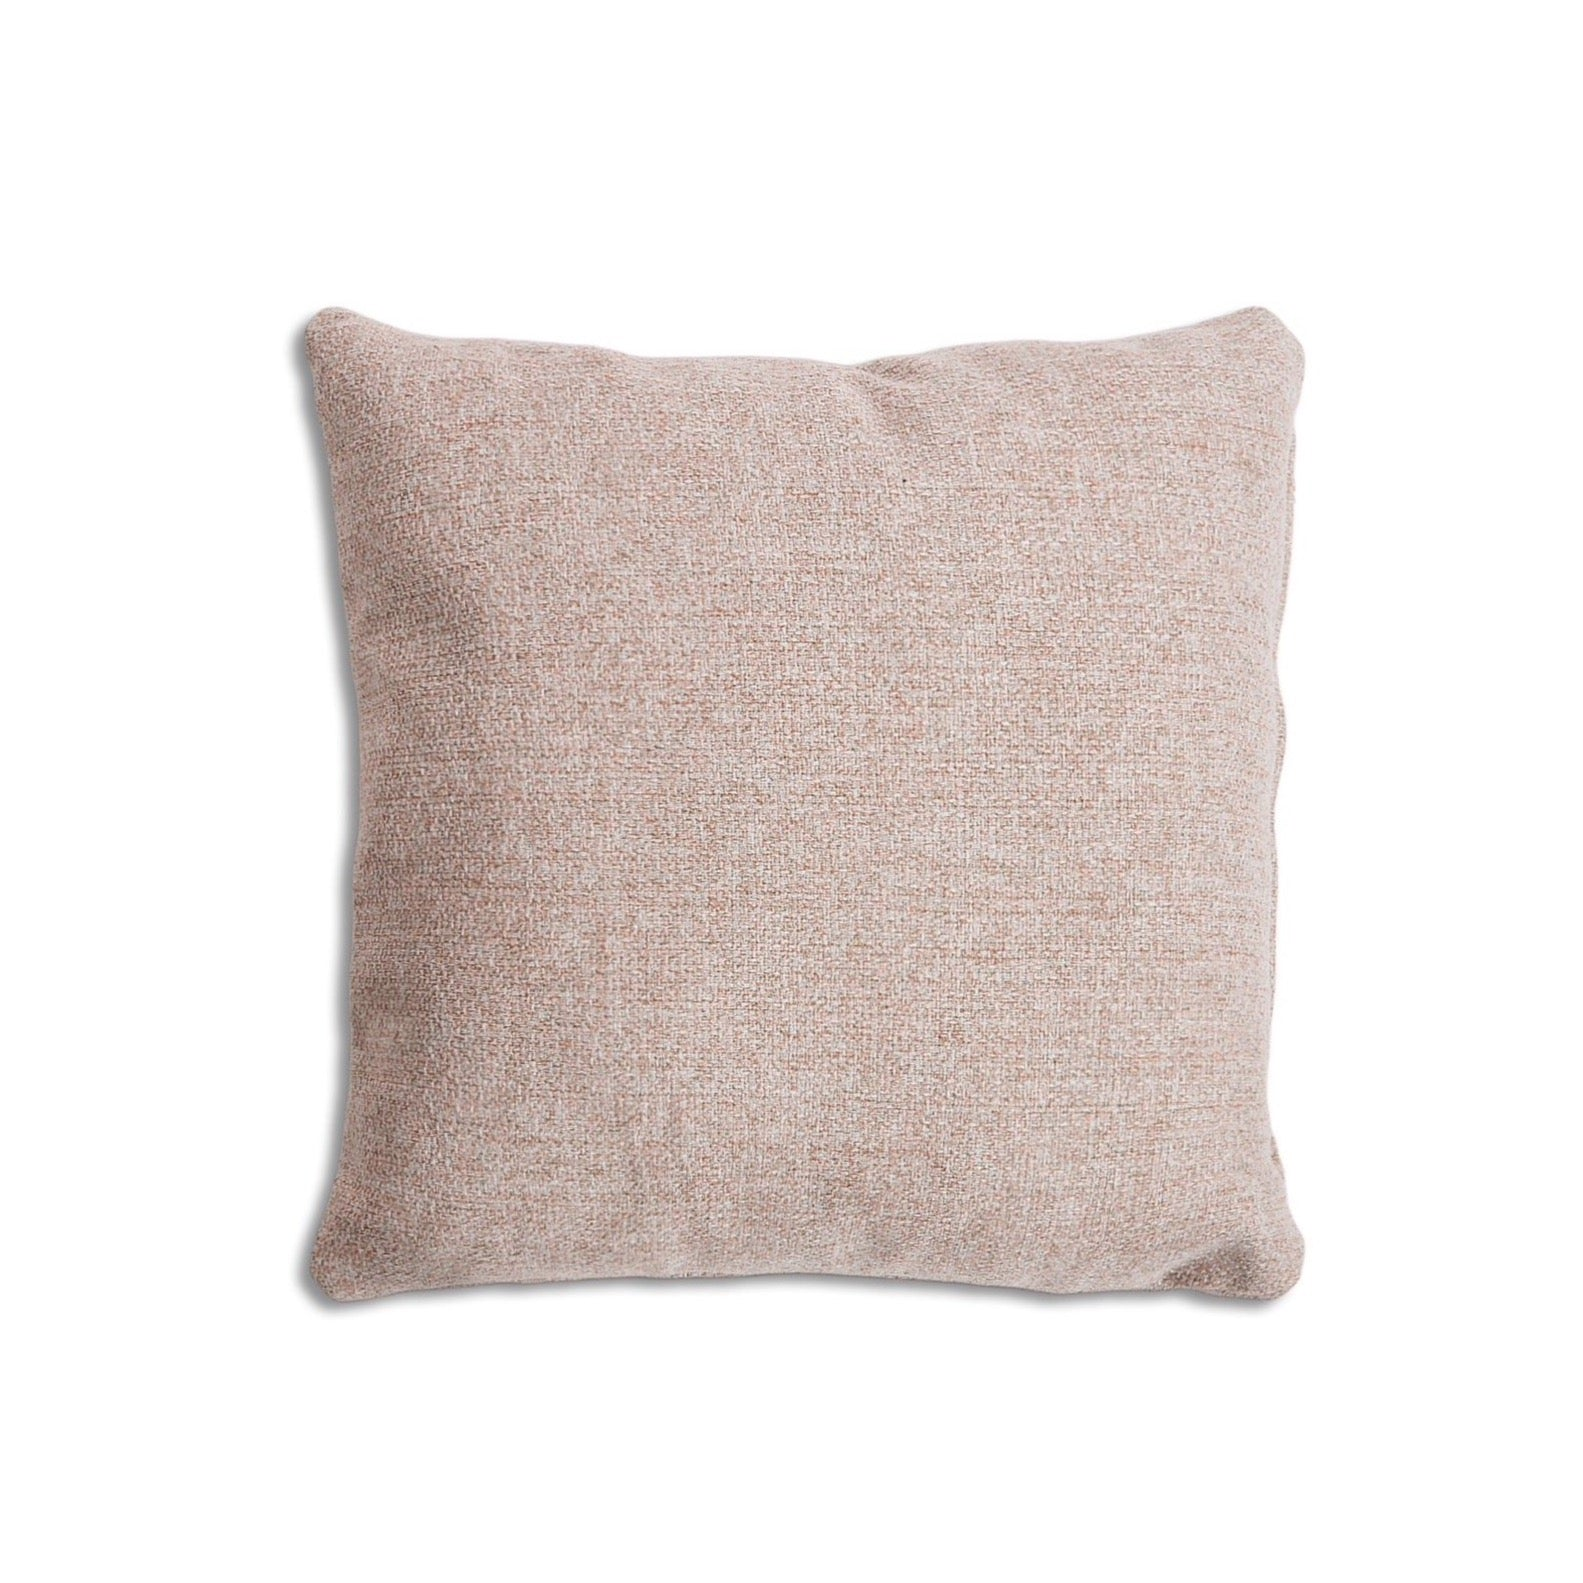 "Breathe 18"" Square Feather Cushion - Heather Weave"